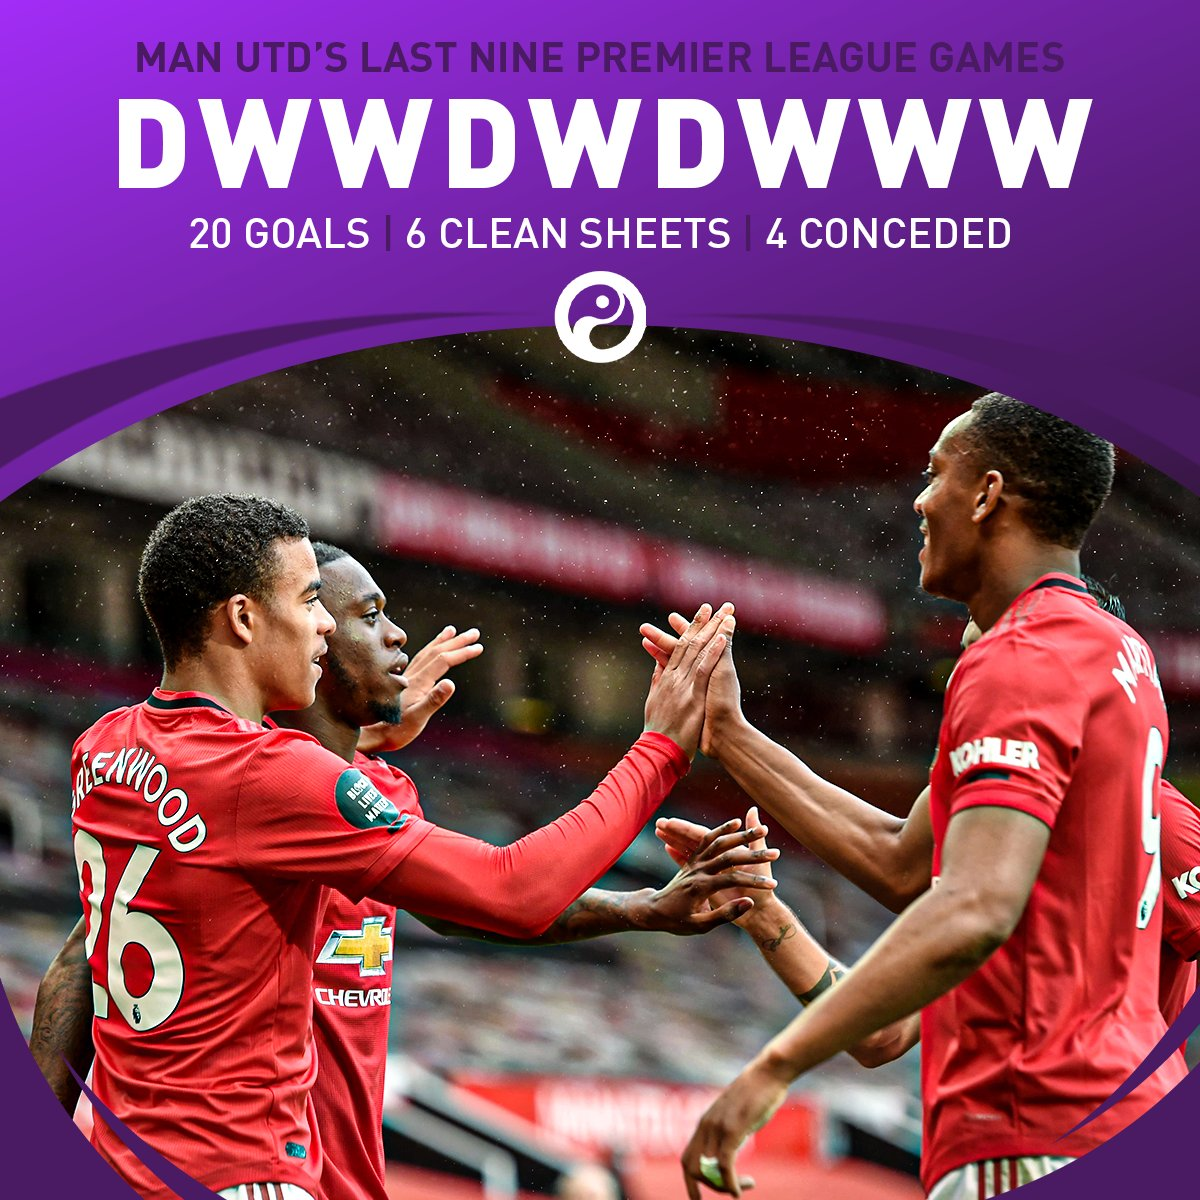 Man Utd have not lost any of their last nine Premier League games, the longest active unbeaten run in the competition.  And they've only conceded four goals.  <br>http://pic.twitter.com/WQYwUf9PKU